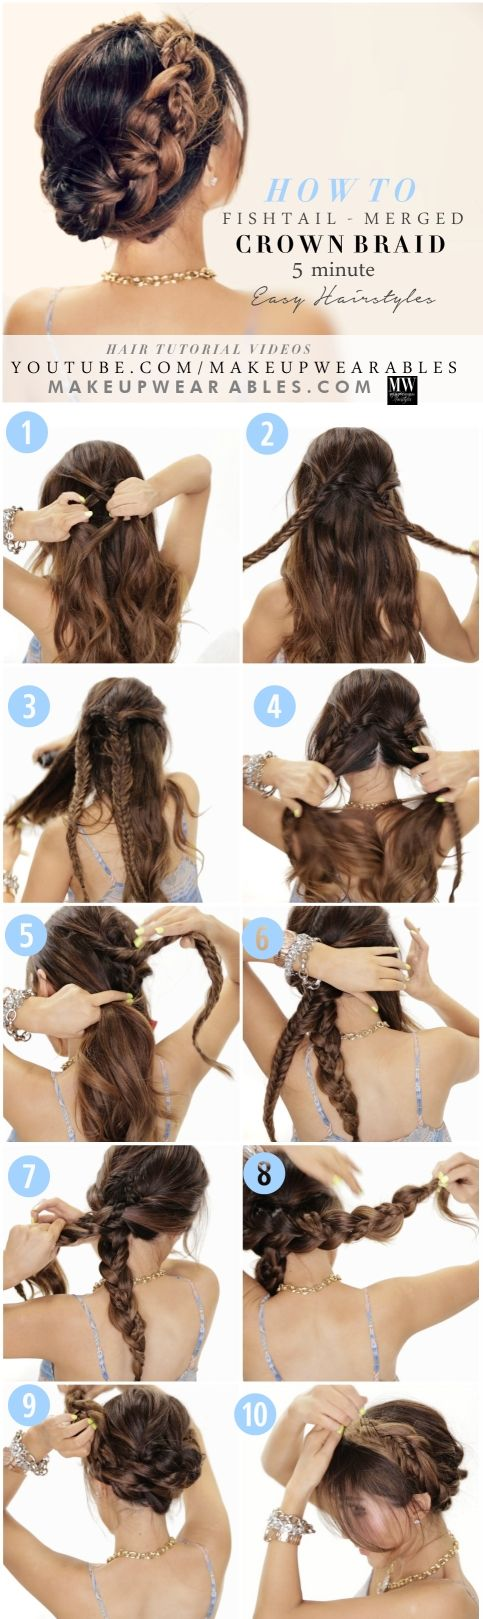 Quick & Easy Braids-in-Braid | Updo Hairstyles for Long Hair